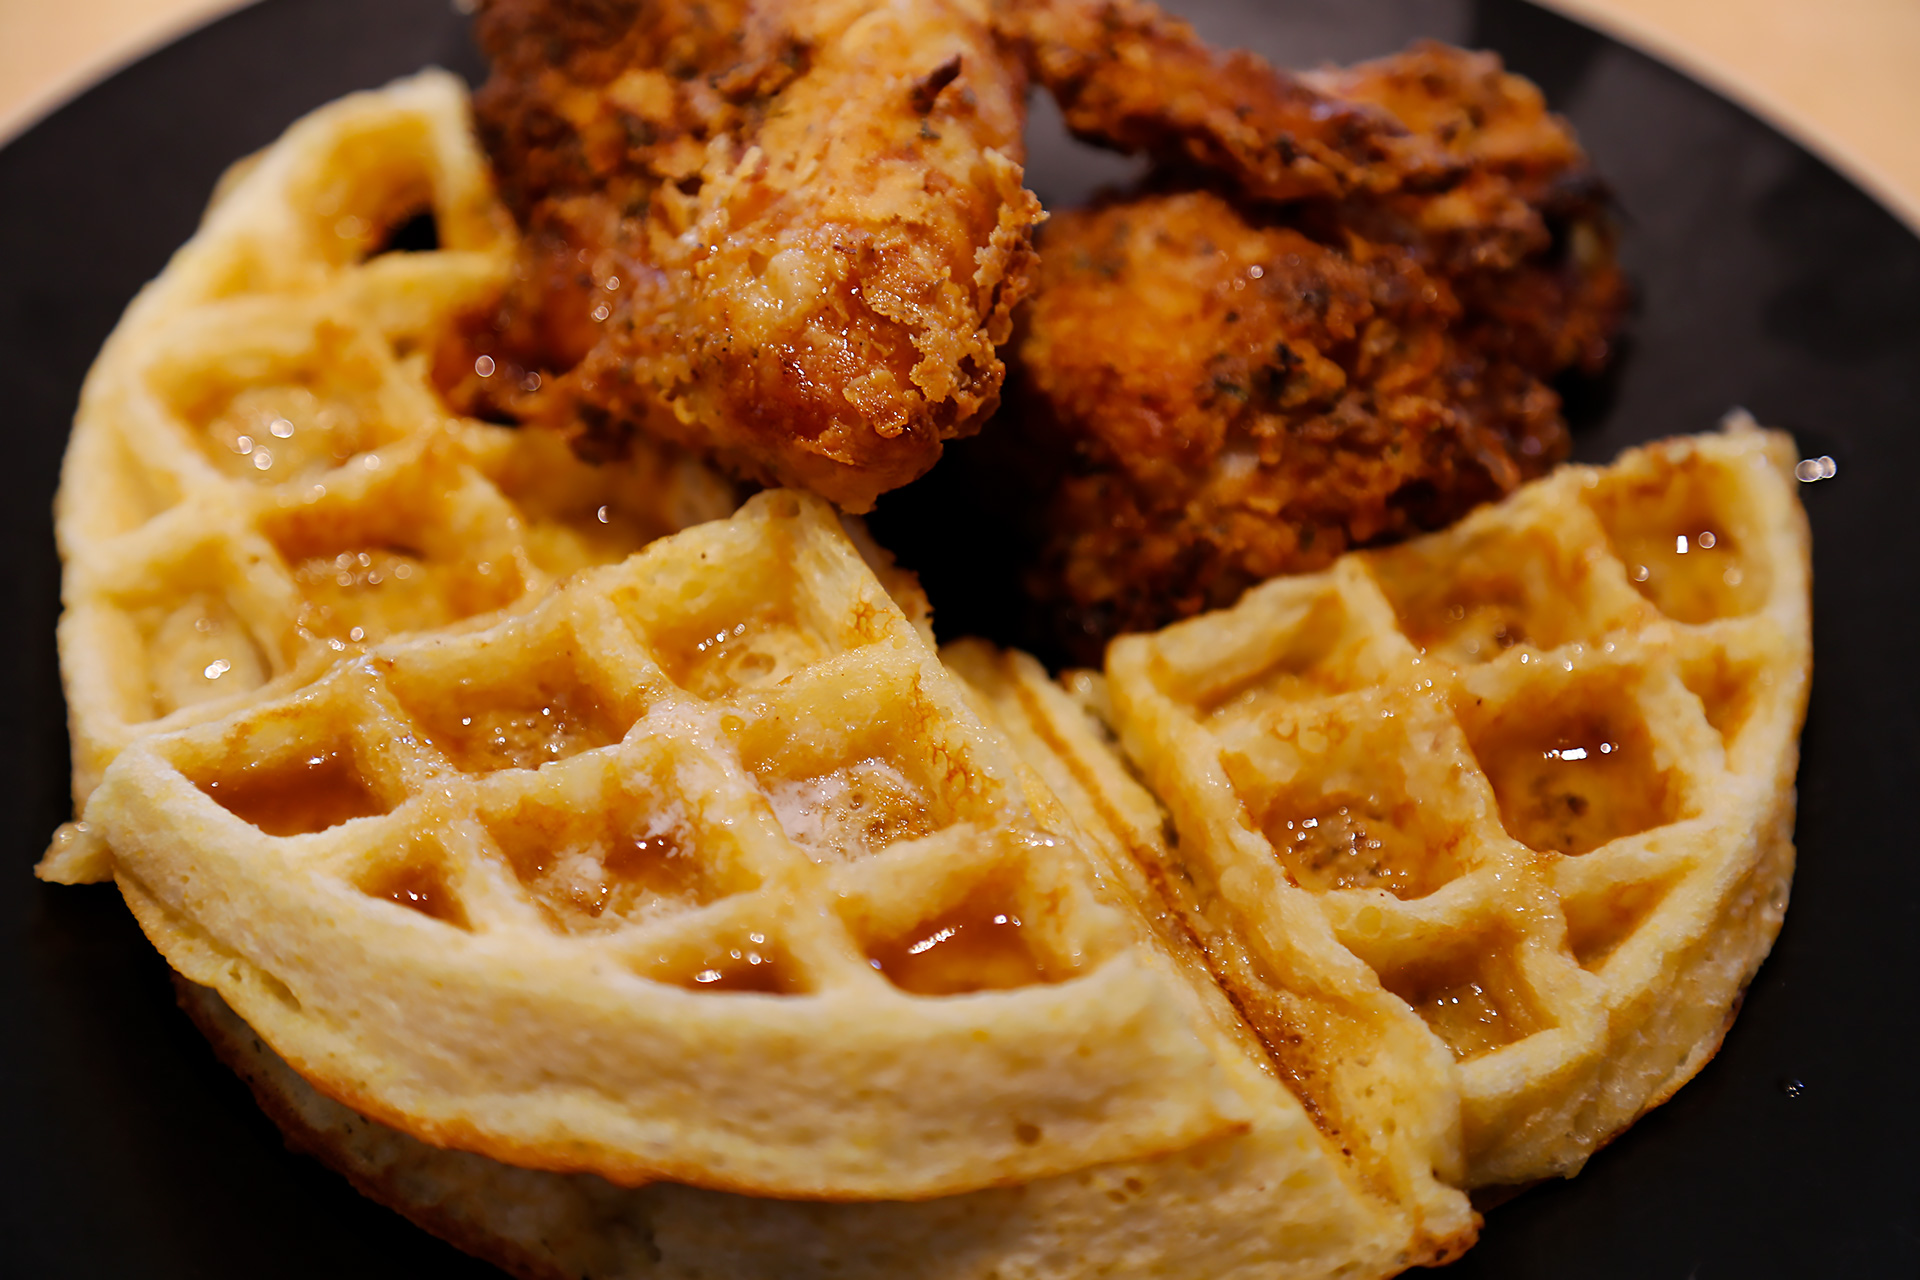 Serve cornmeal waffles with apple cider syrup and buttermilk fried chicken